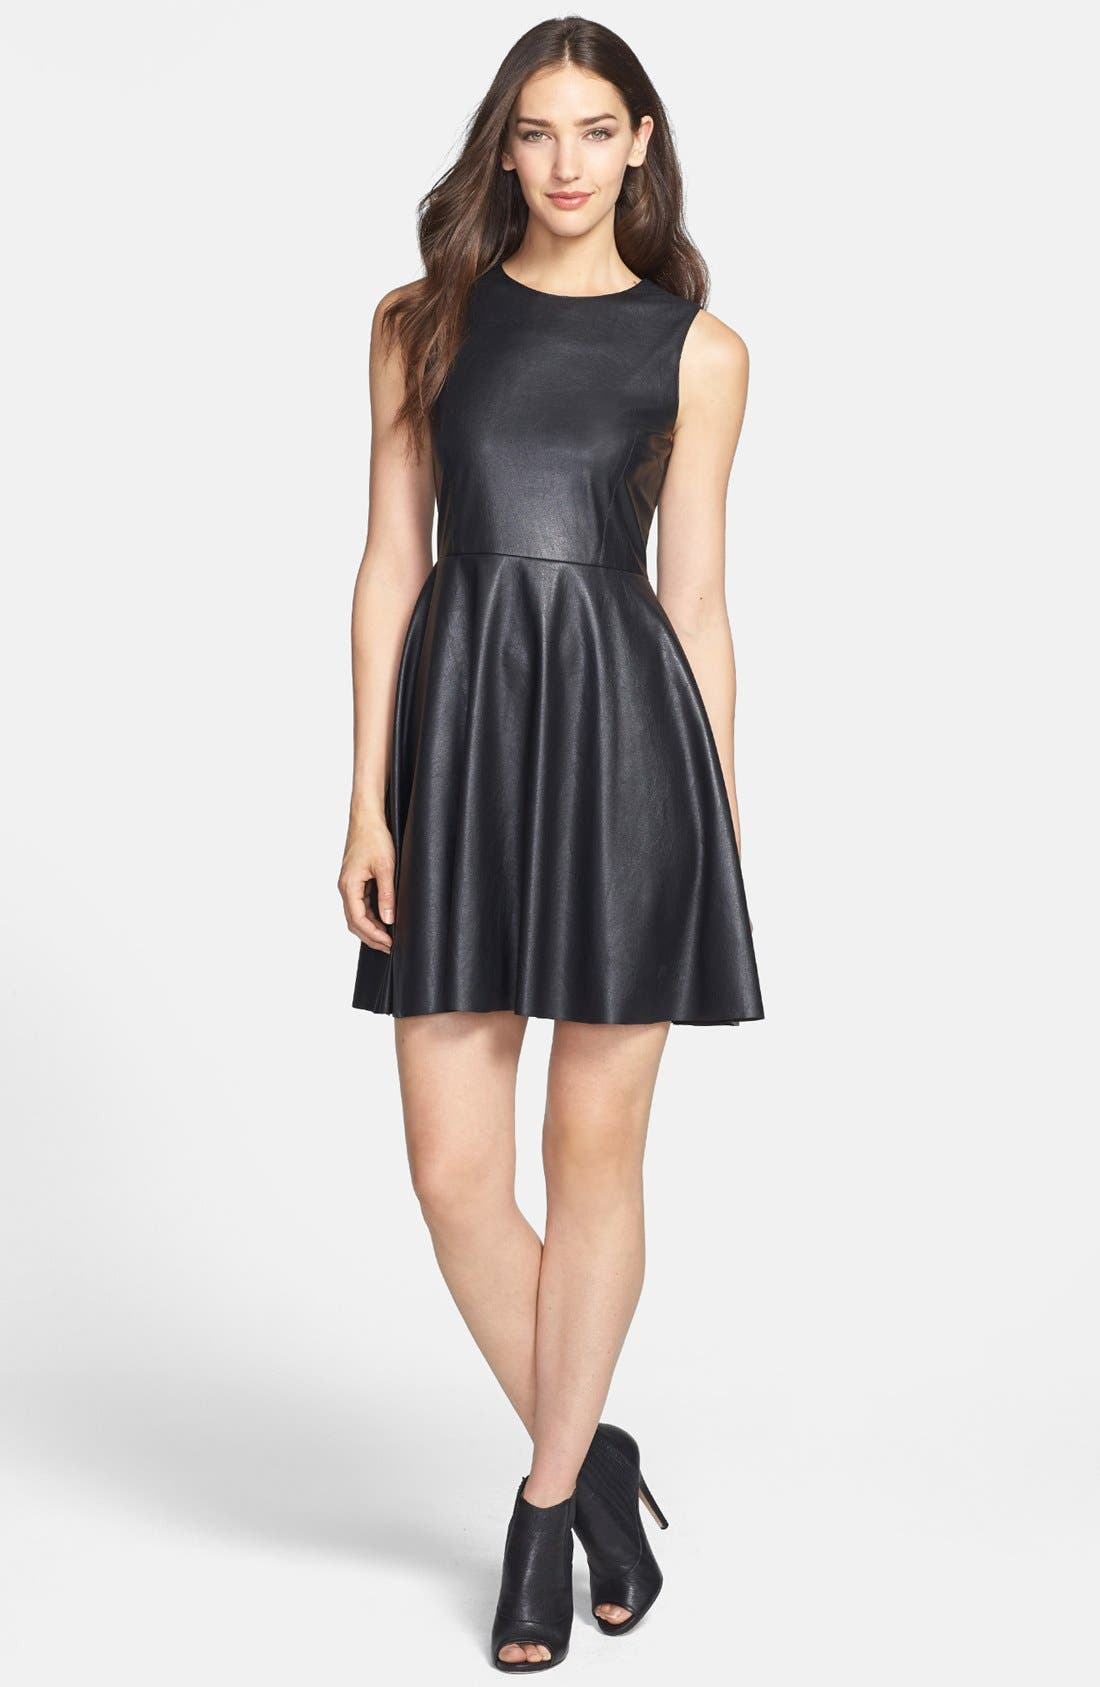 Main Image - B44 Dressed by Bailey 44 'Betsy' Faux Leather Fit & Flare Dress